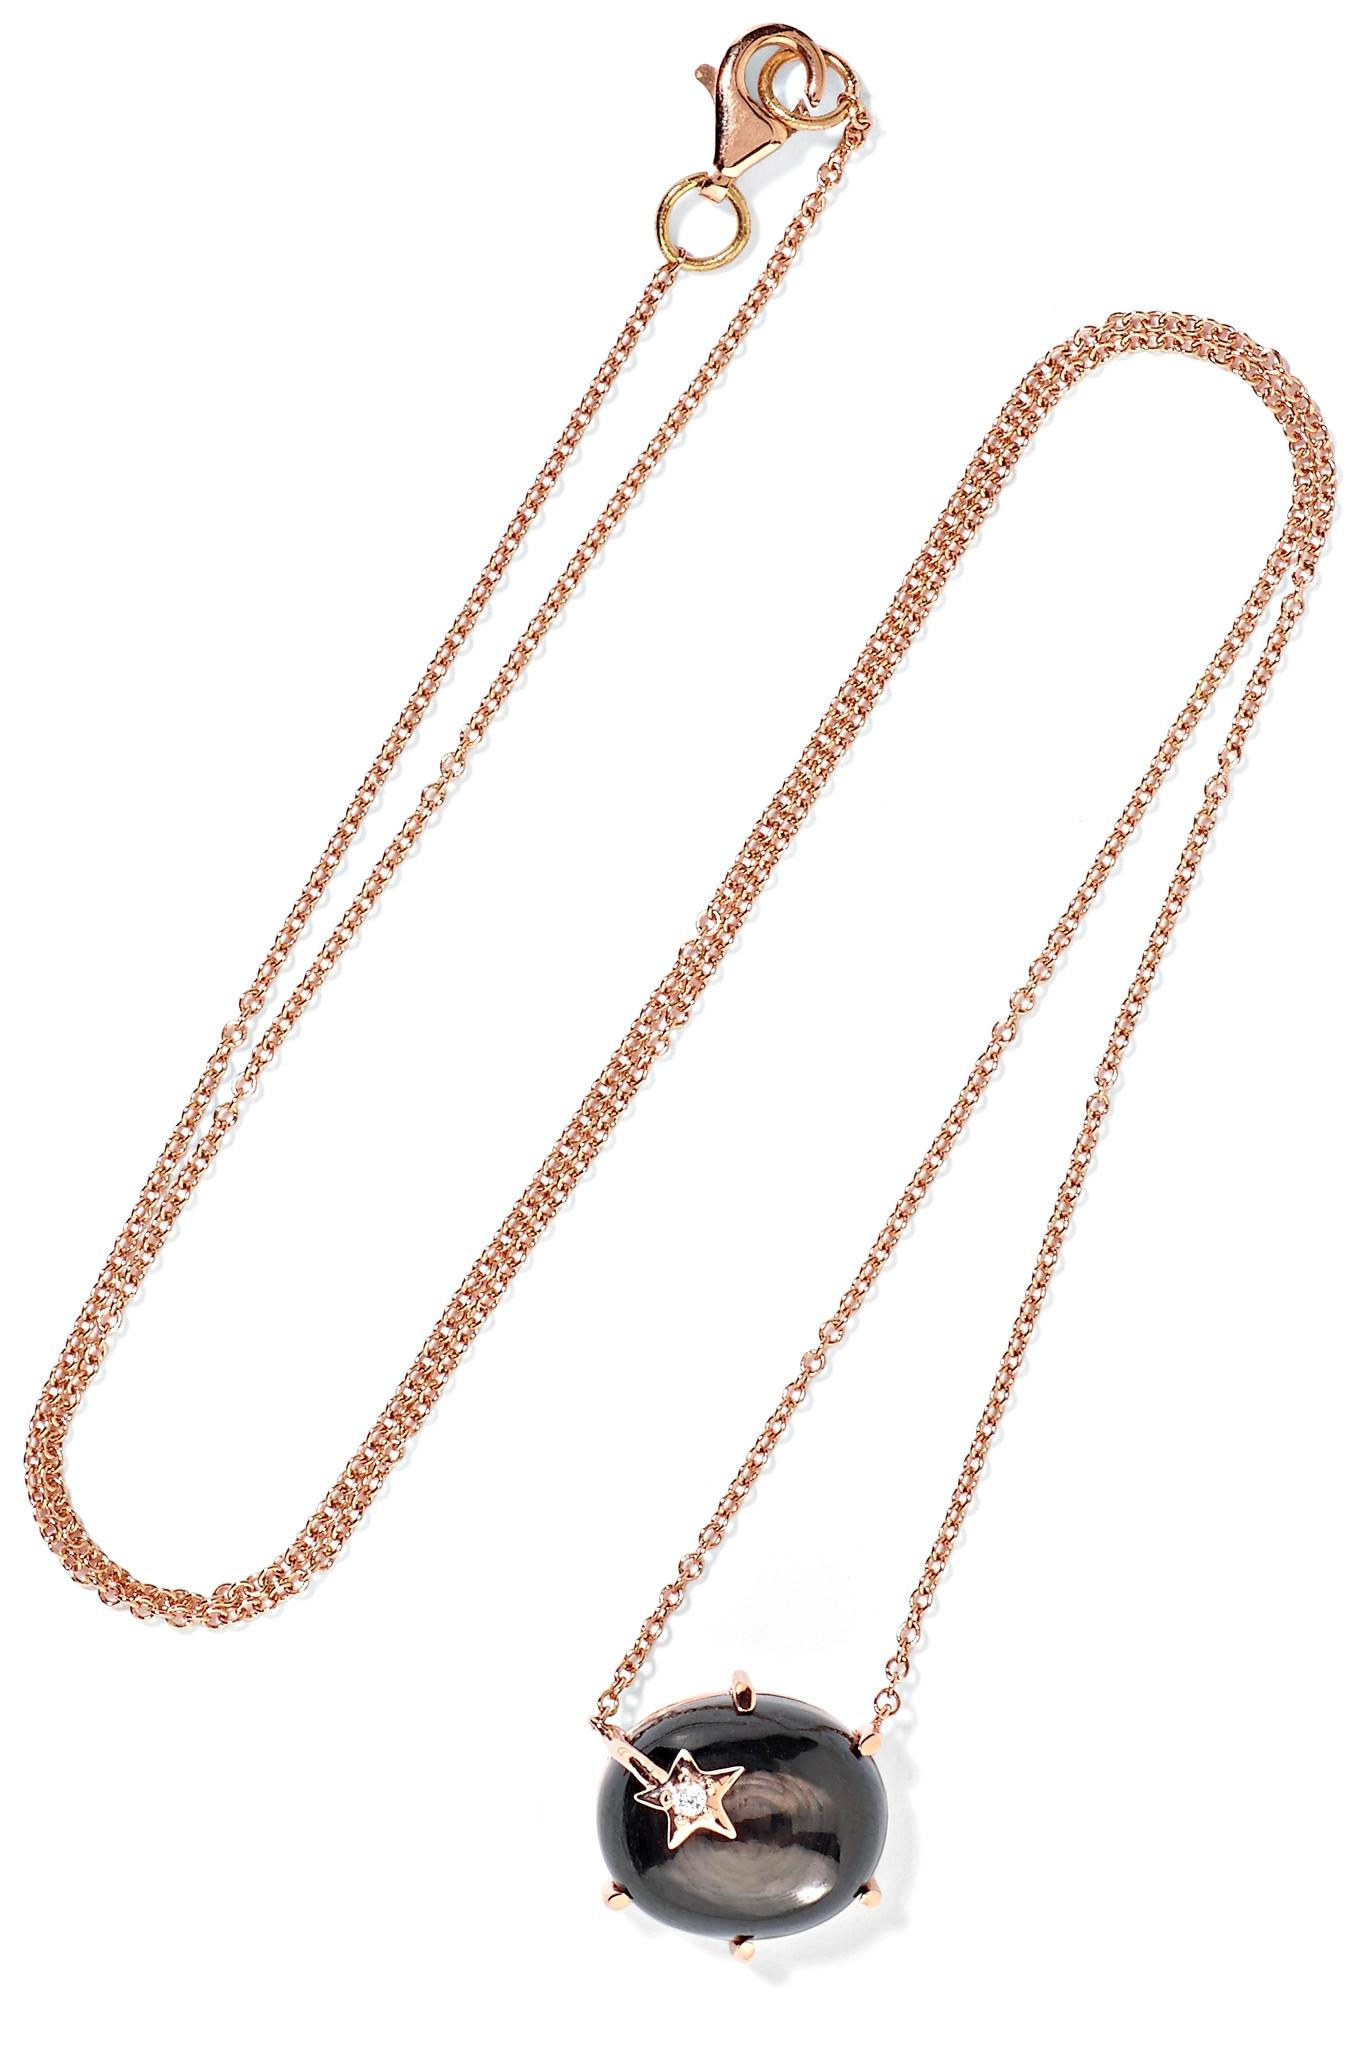 Andrea Fohrman Mini Galaxy 18-karat Rose Gold Multi-stone Necklace hNi4Uz7is